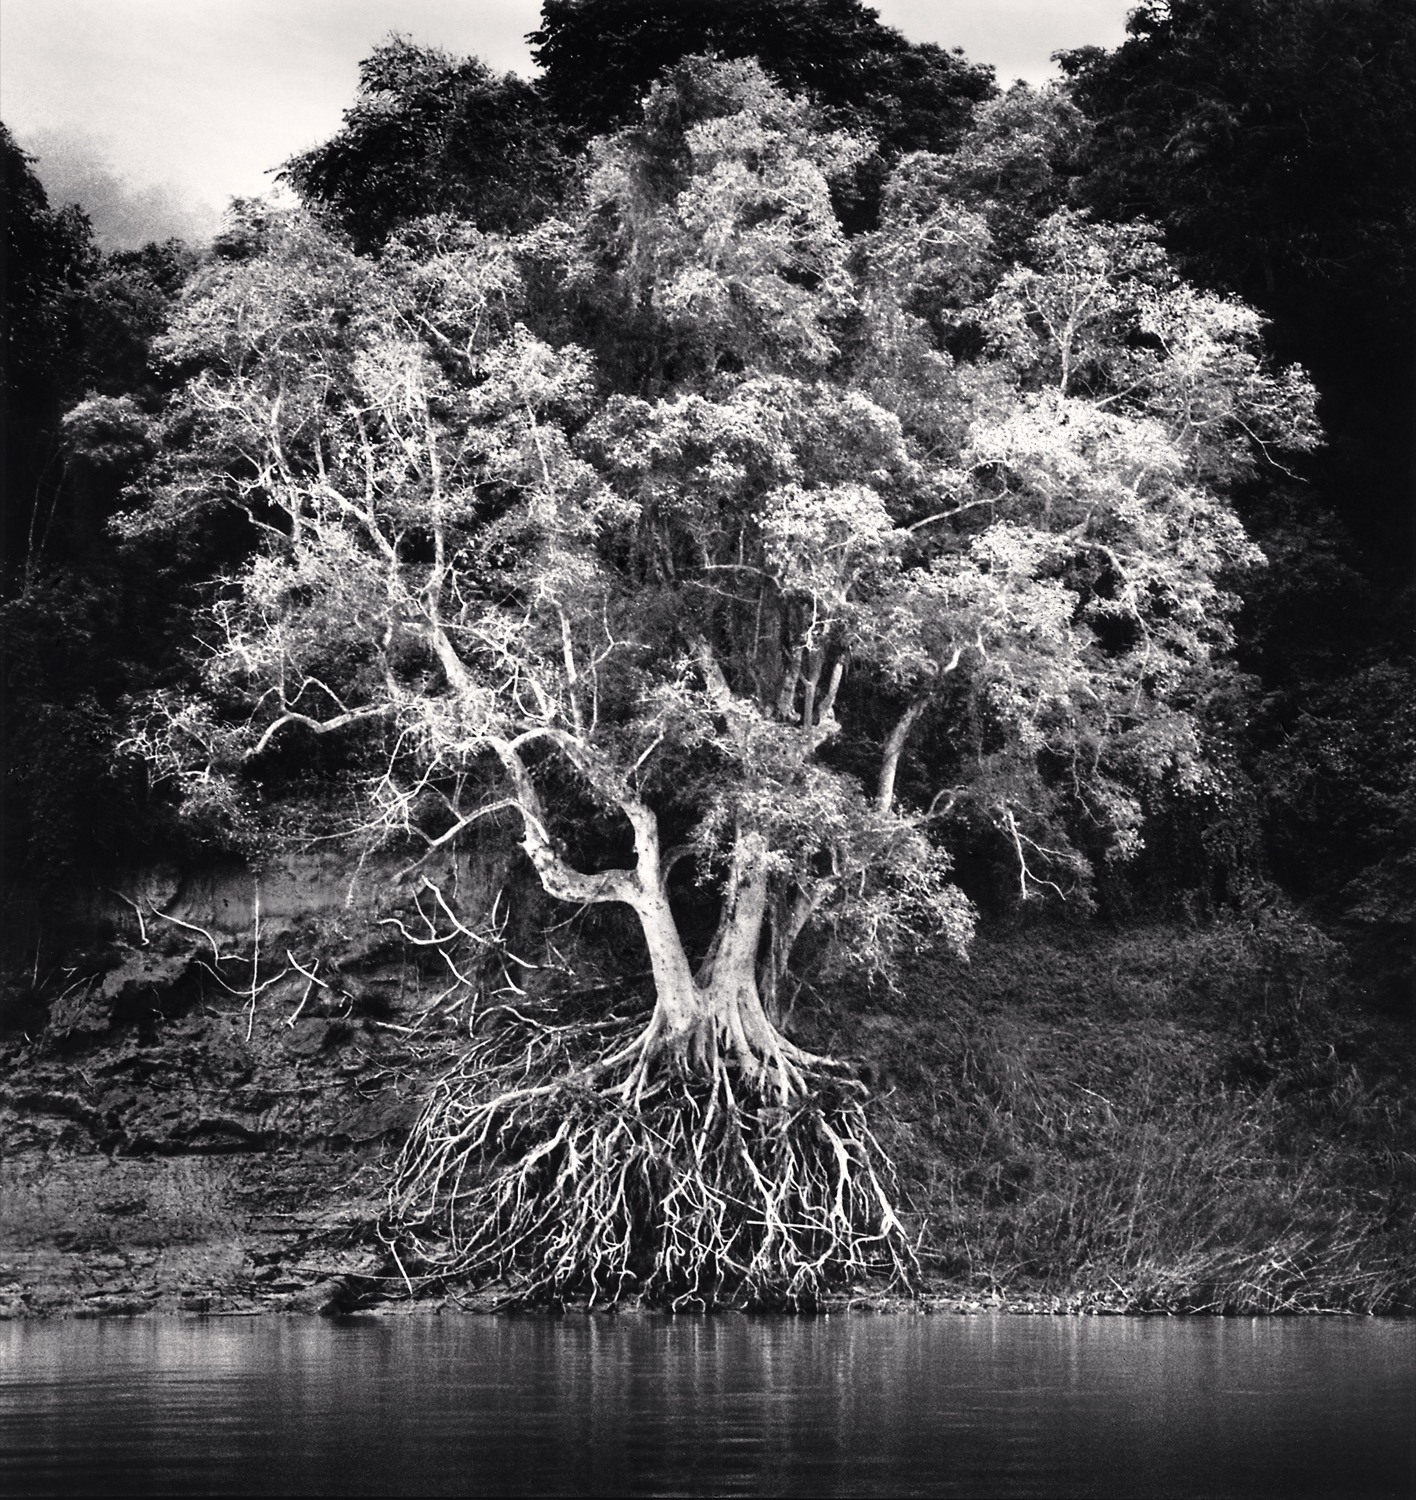 Michael Kenna, Kokdua Tree and Exposed Roots, Mekong River, Luang Prabang, Laos, 2015, courtesy Ira Stehmann Fine Art